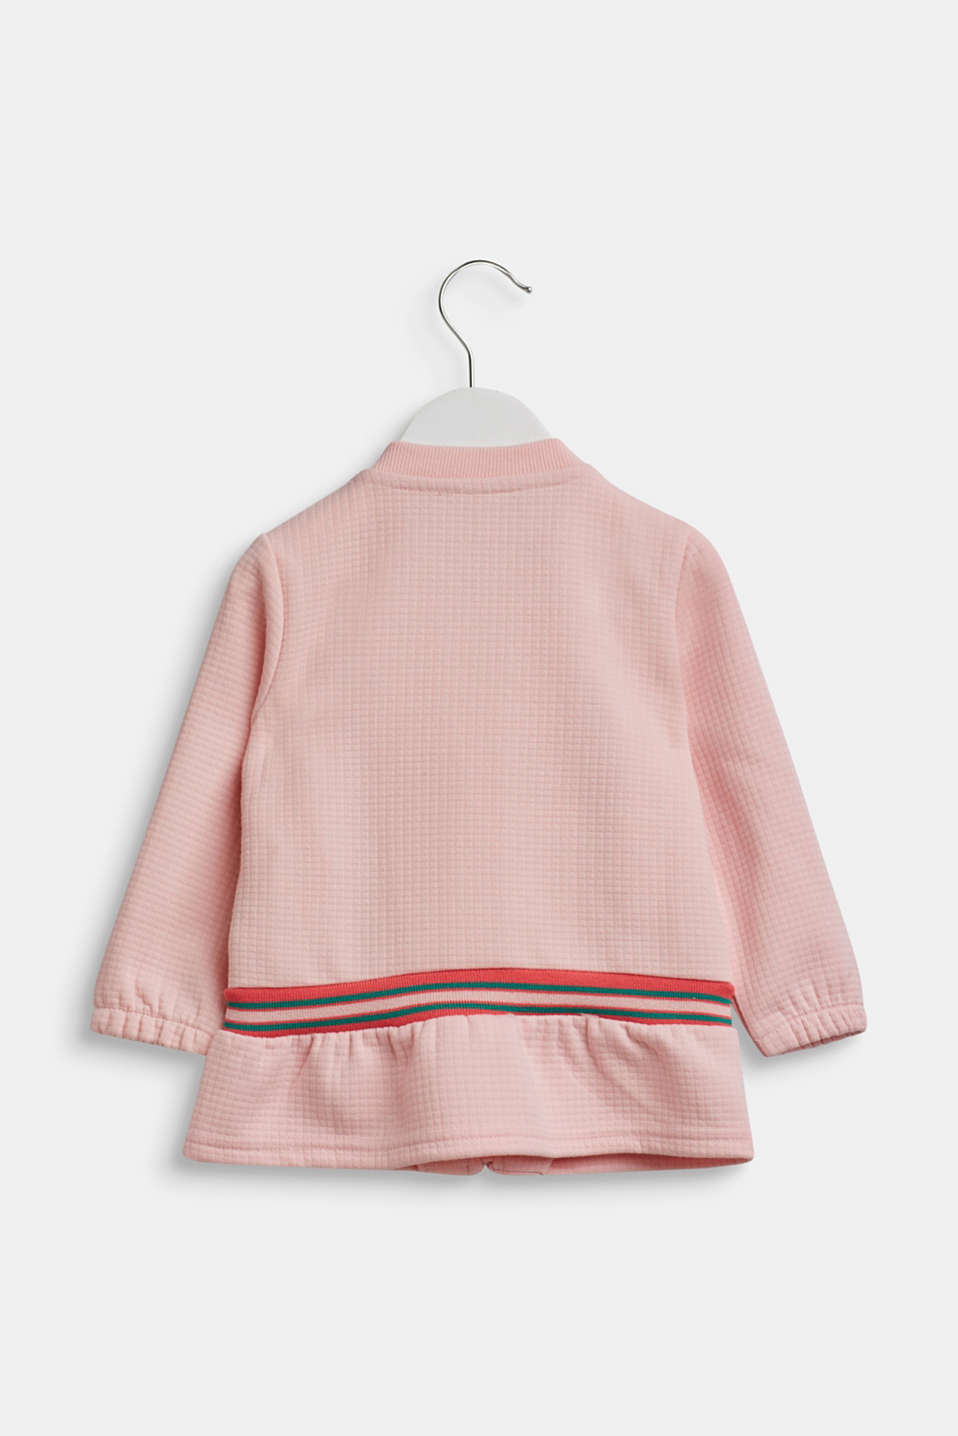 Sweatshirt cardigan with contrasting stripes, TINTED ROSE, detail image number 1